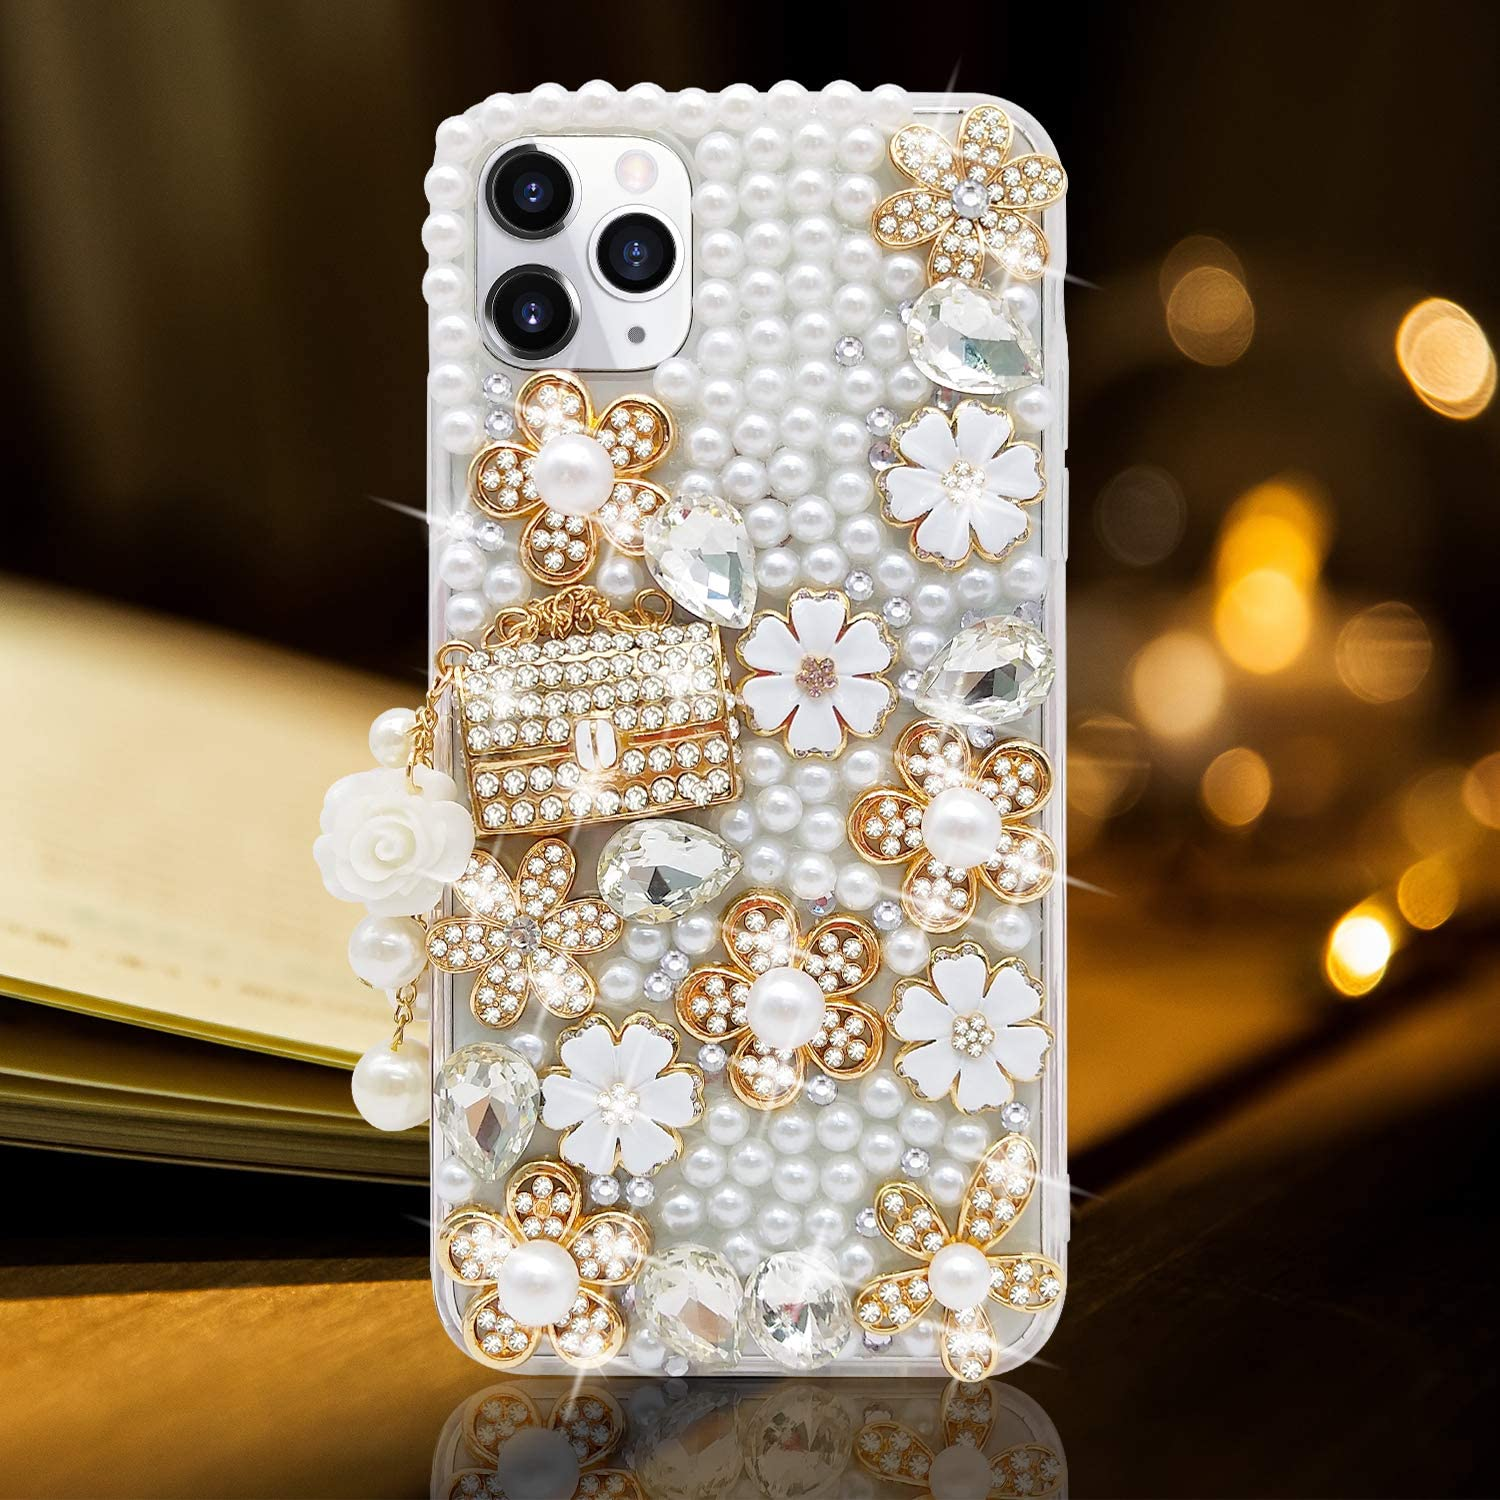 Guppy for iPhone 11 Pro Max Case Women Luxury 3D Bling Shiny Rhinestone Diamond Crystal Pearl Handmade Pendant Handbag Flowers Soft Protective Anti-Fall Case for iPhone 11 Pro Max